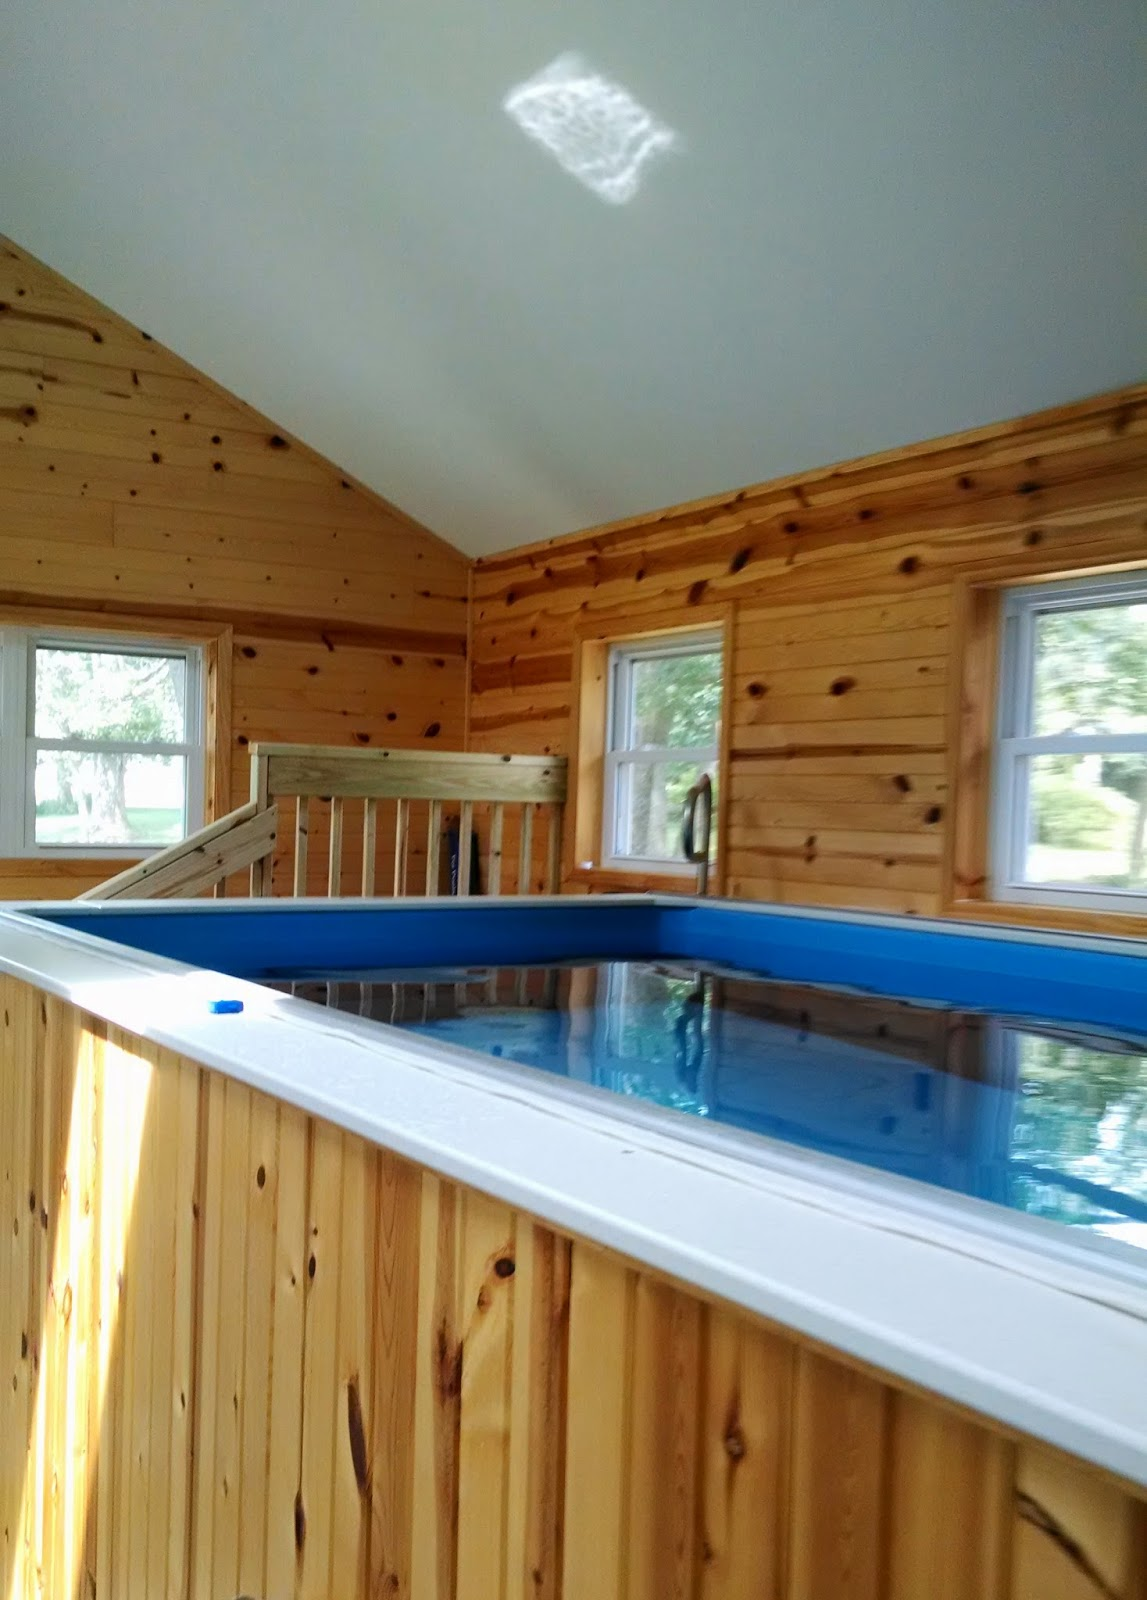 A simple, rustic Endless Pool installation used by Meg O. of Stoddard, WI, to recover from a painful, years-long injury.